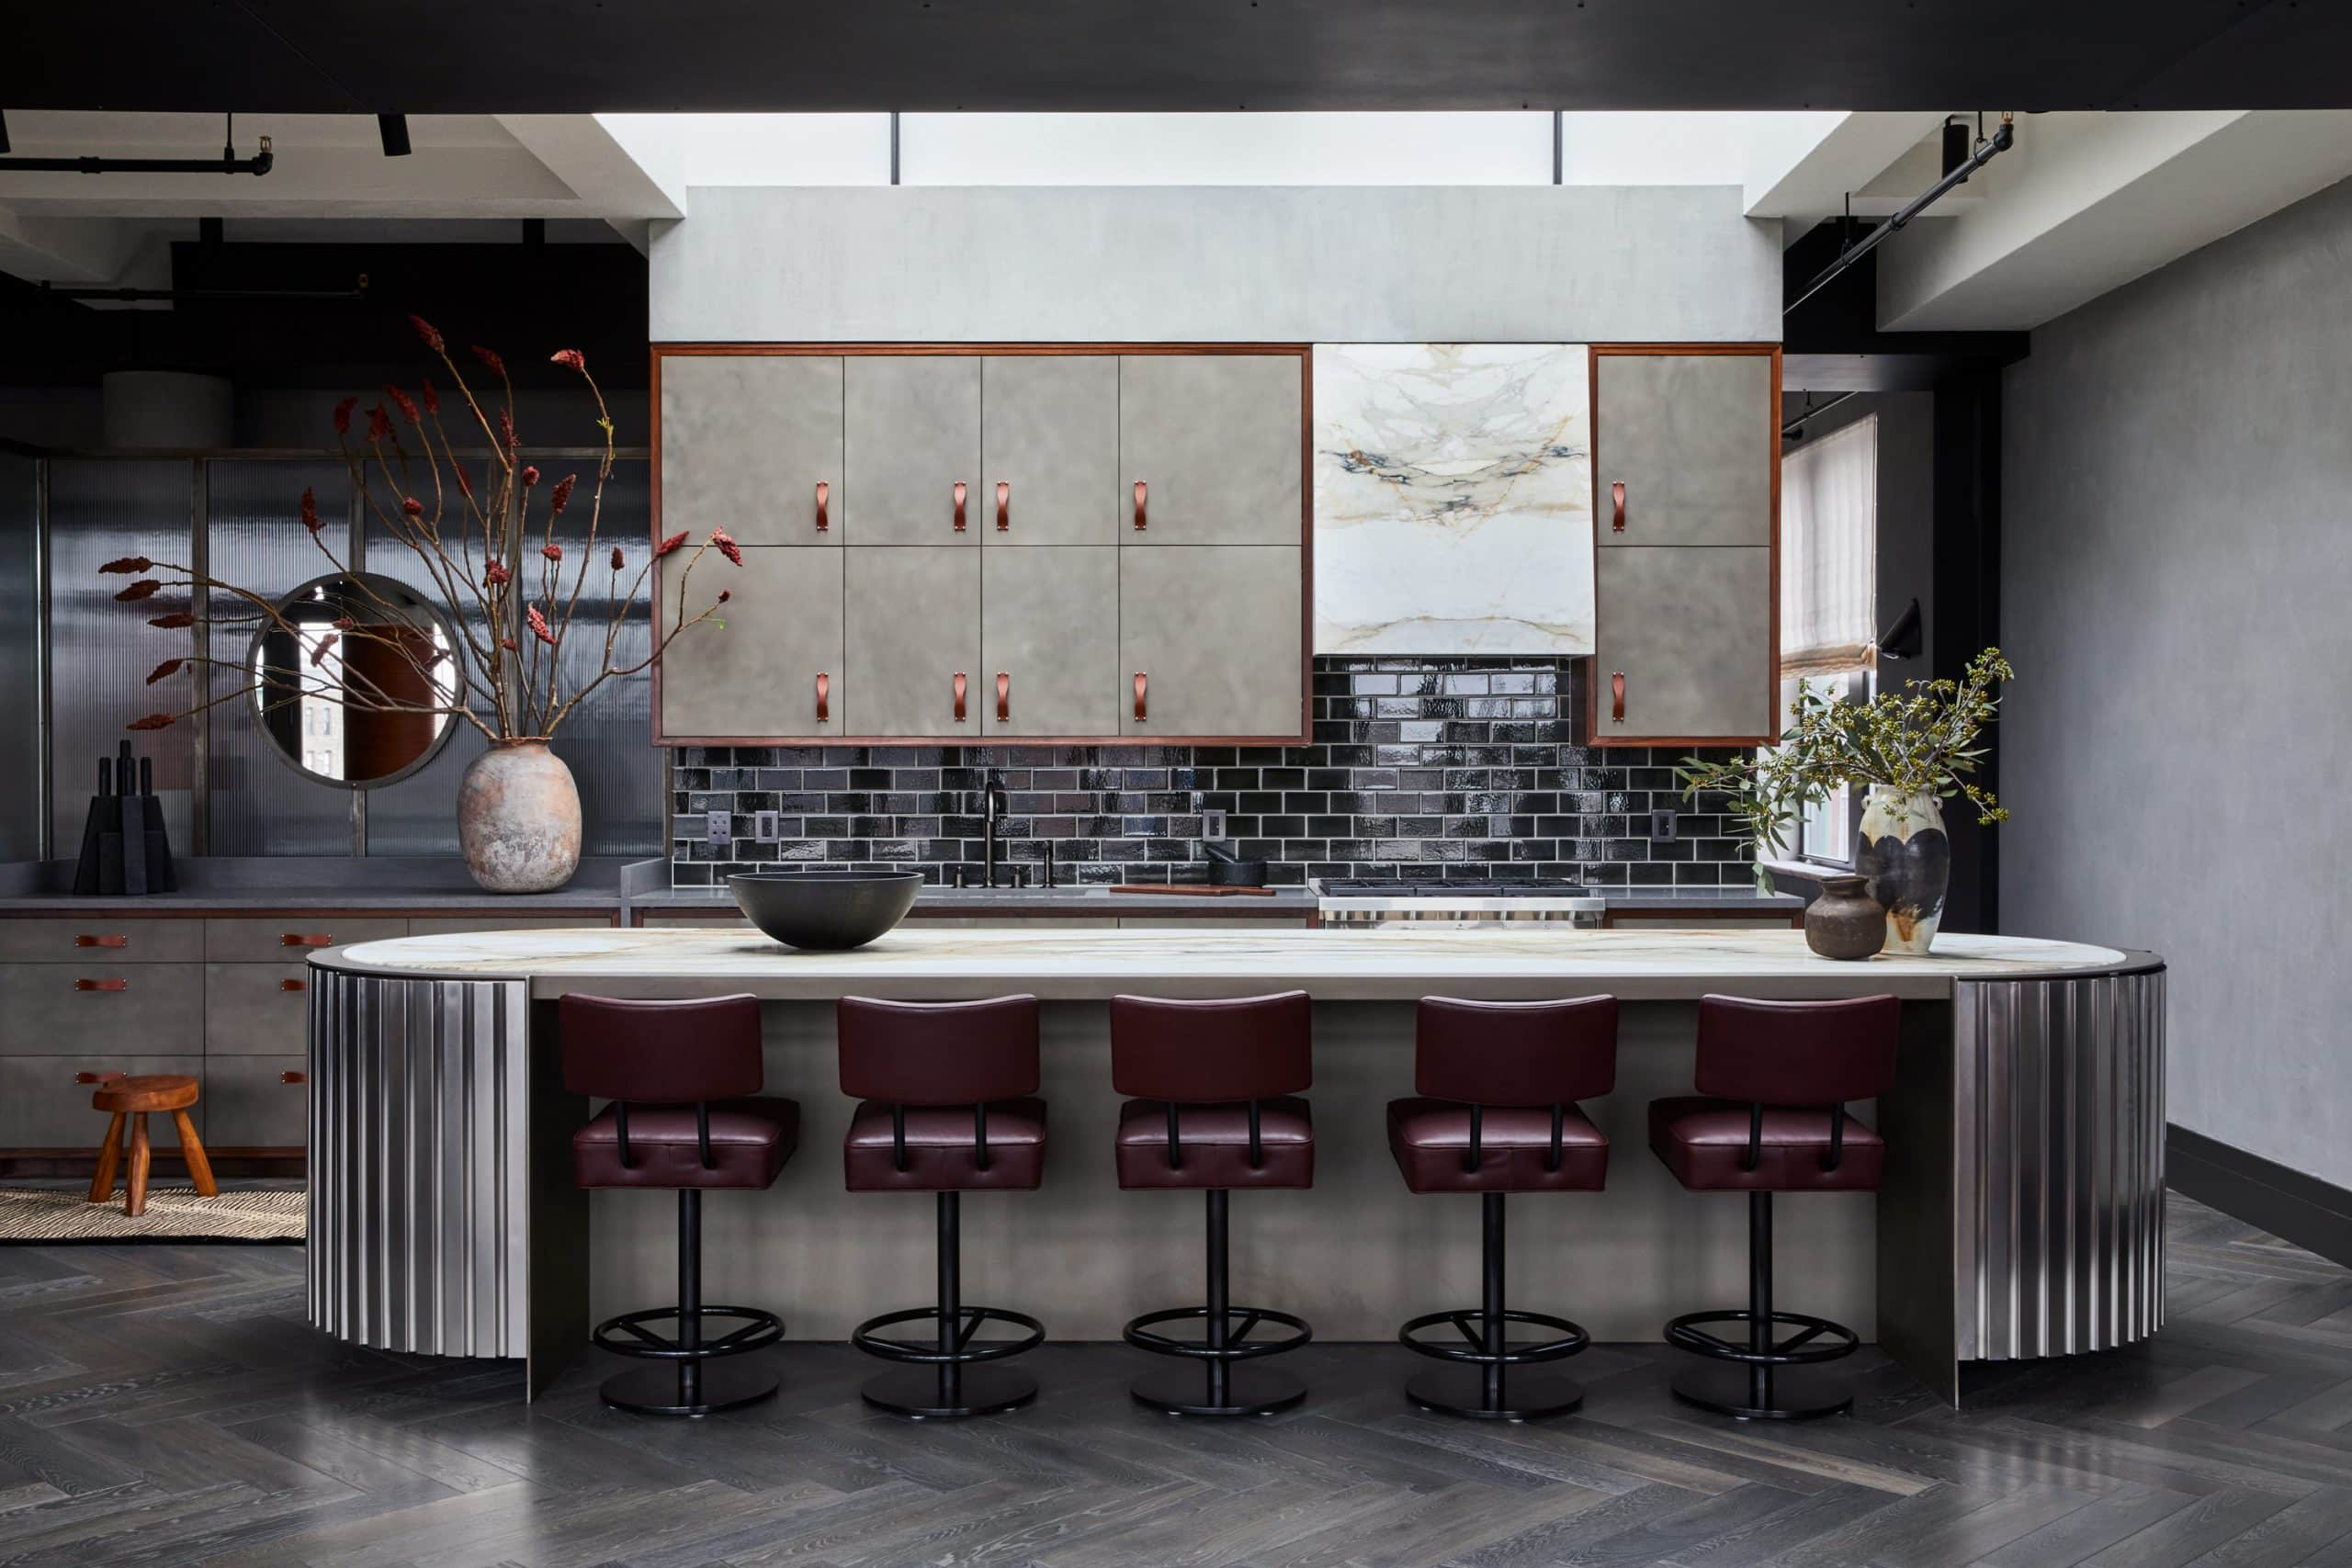 A Deco-inspired custom kitchen island designed by Jesse Parris-Lamb